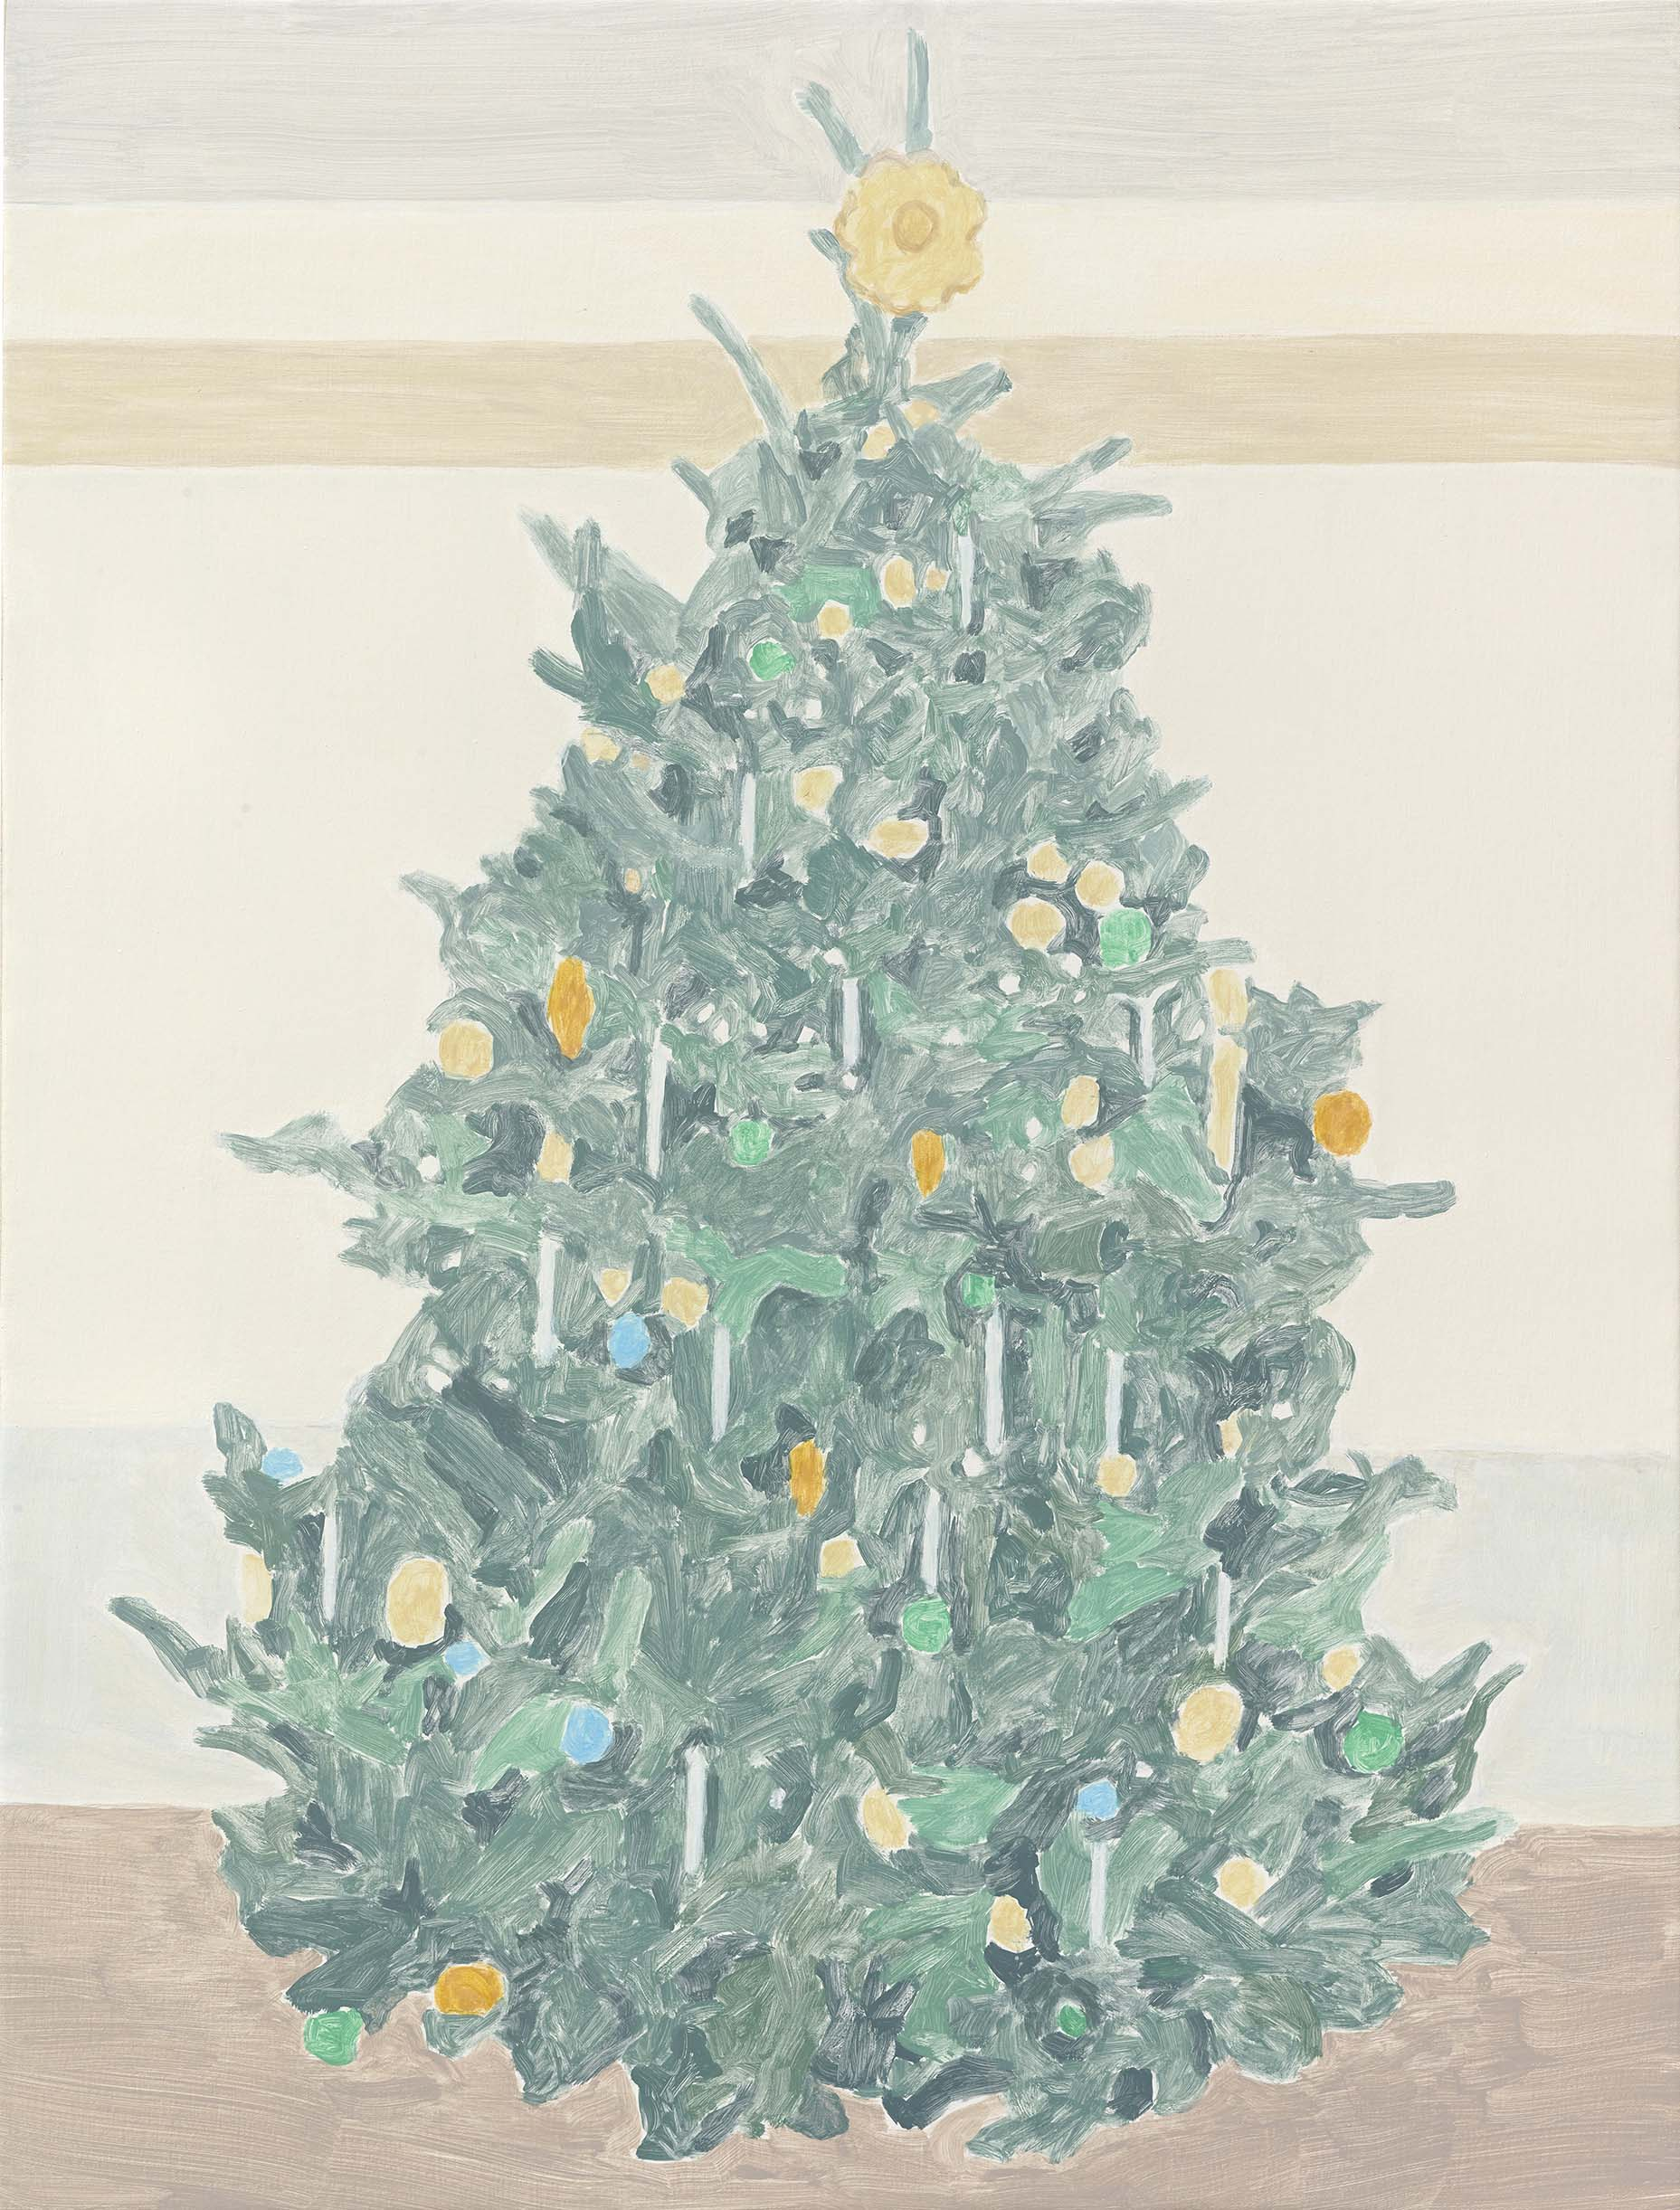 Xmas Tree (candles), acrylic on canvas, 32 x 24.25 inches, 2014.